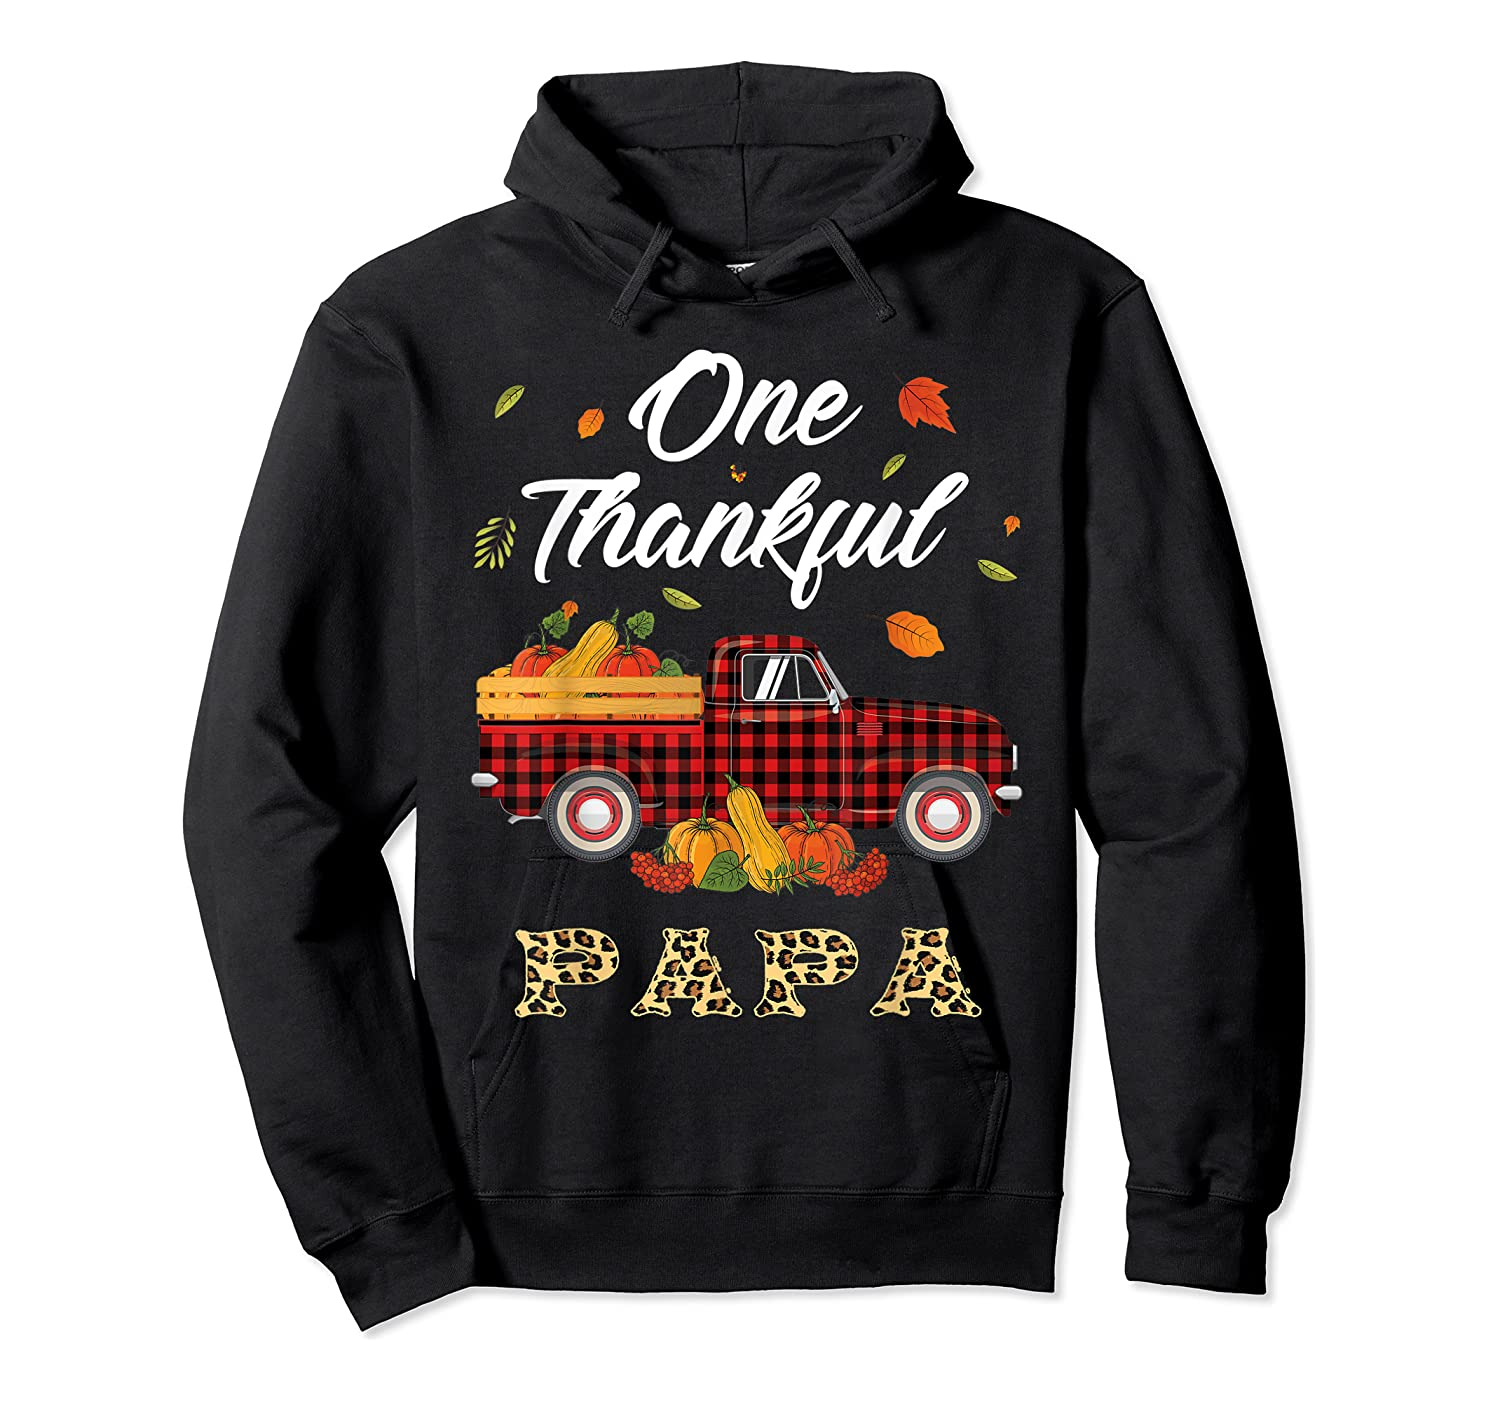 One Thankful Papa Truck Thanksgiving Day Family Matching T-shirt Unisex Pullover Hoodie